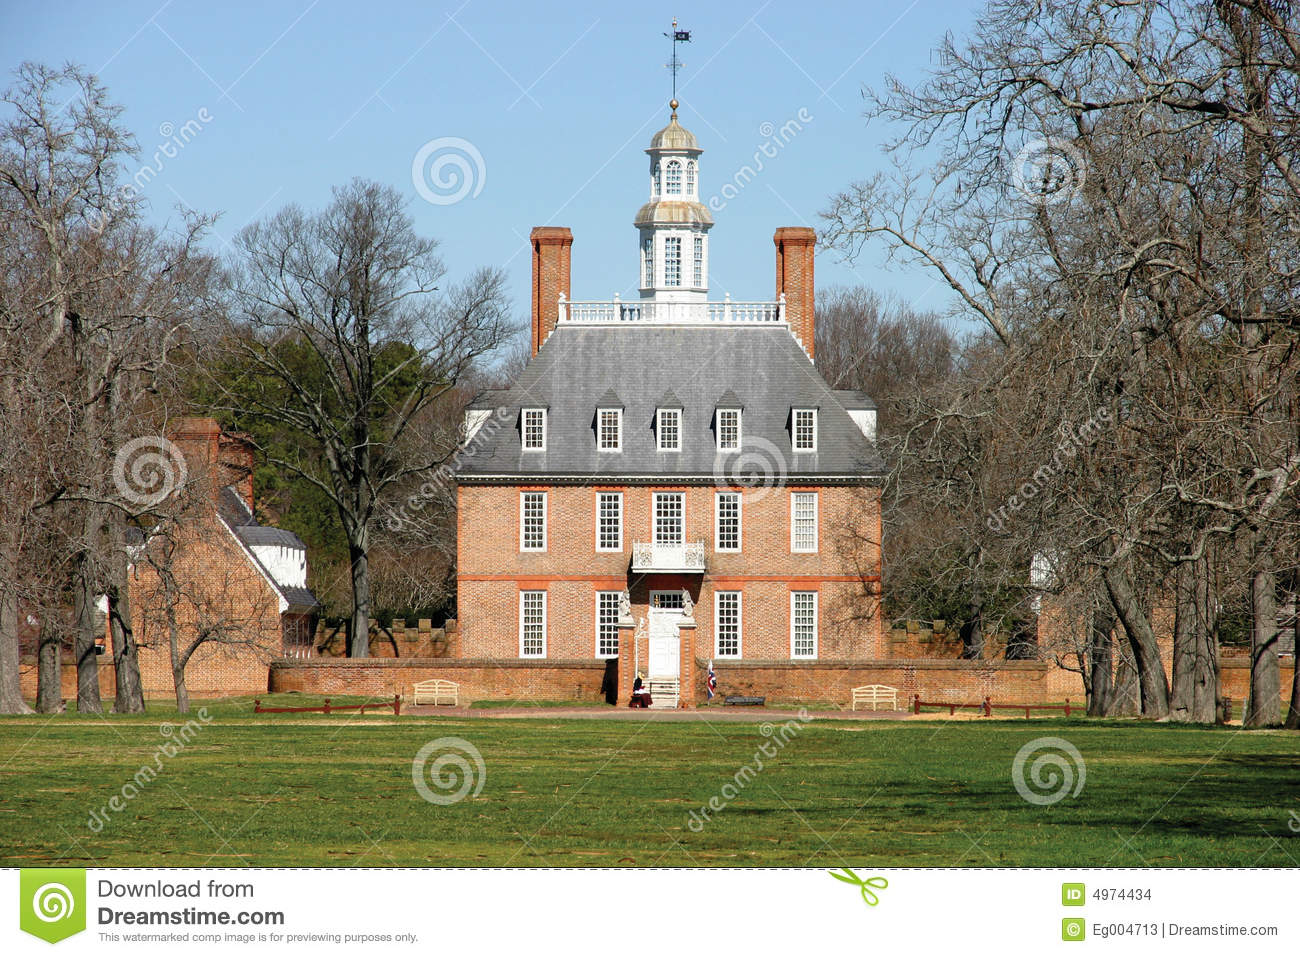 Colonial Williamsburg Stock Images  Image 4974434